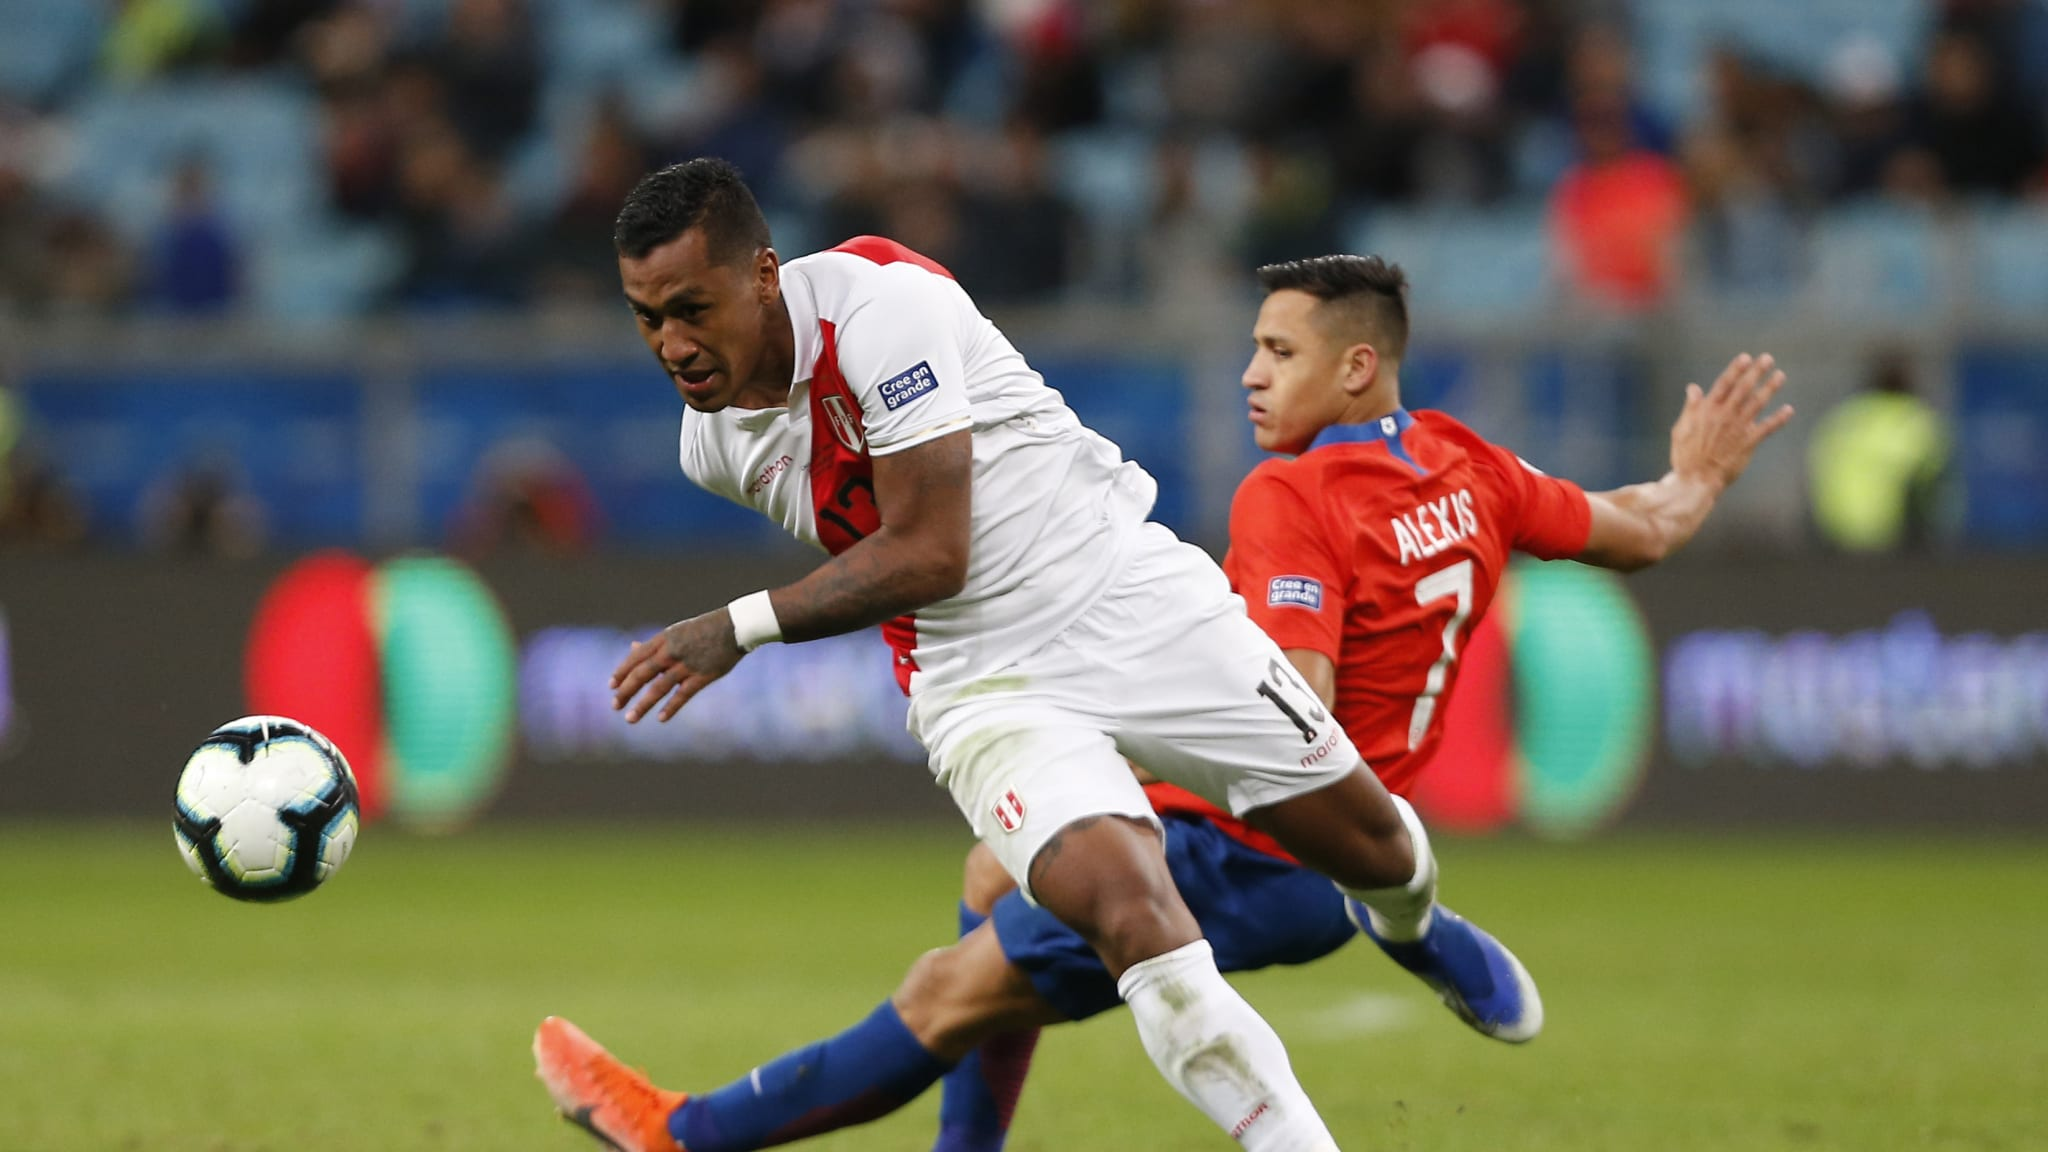 Renato Tapia of Peru fights for the ball with Alexis Sanchez of Chile